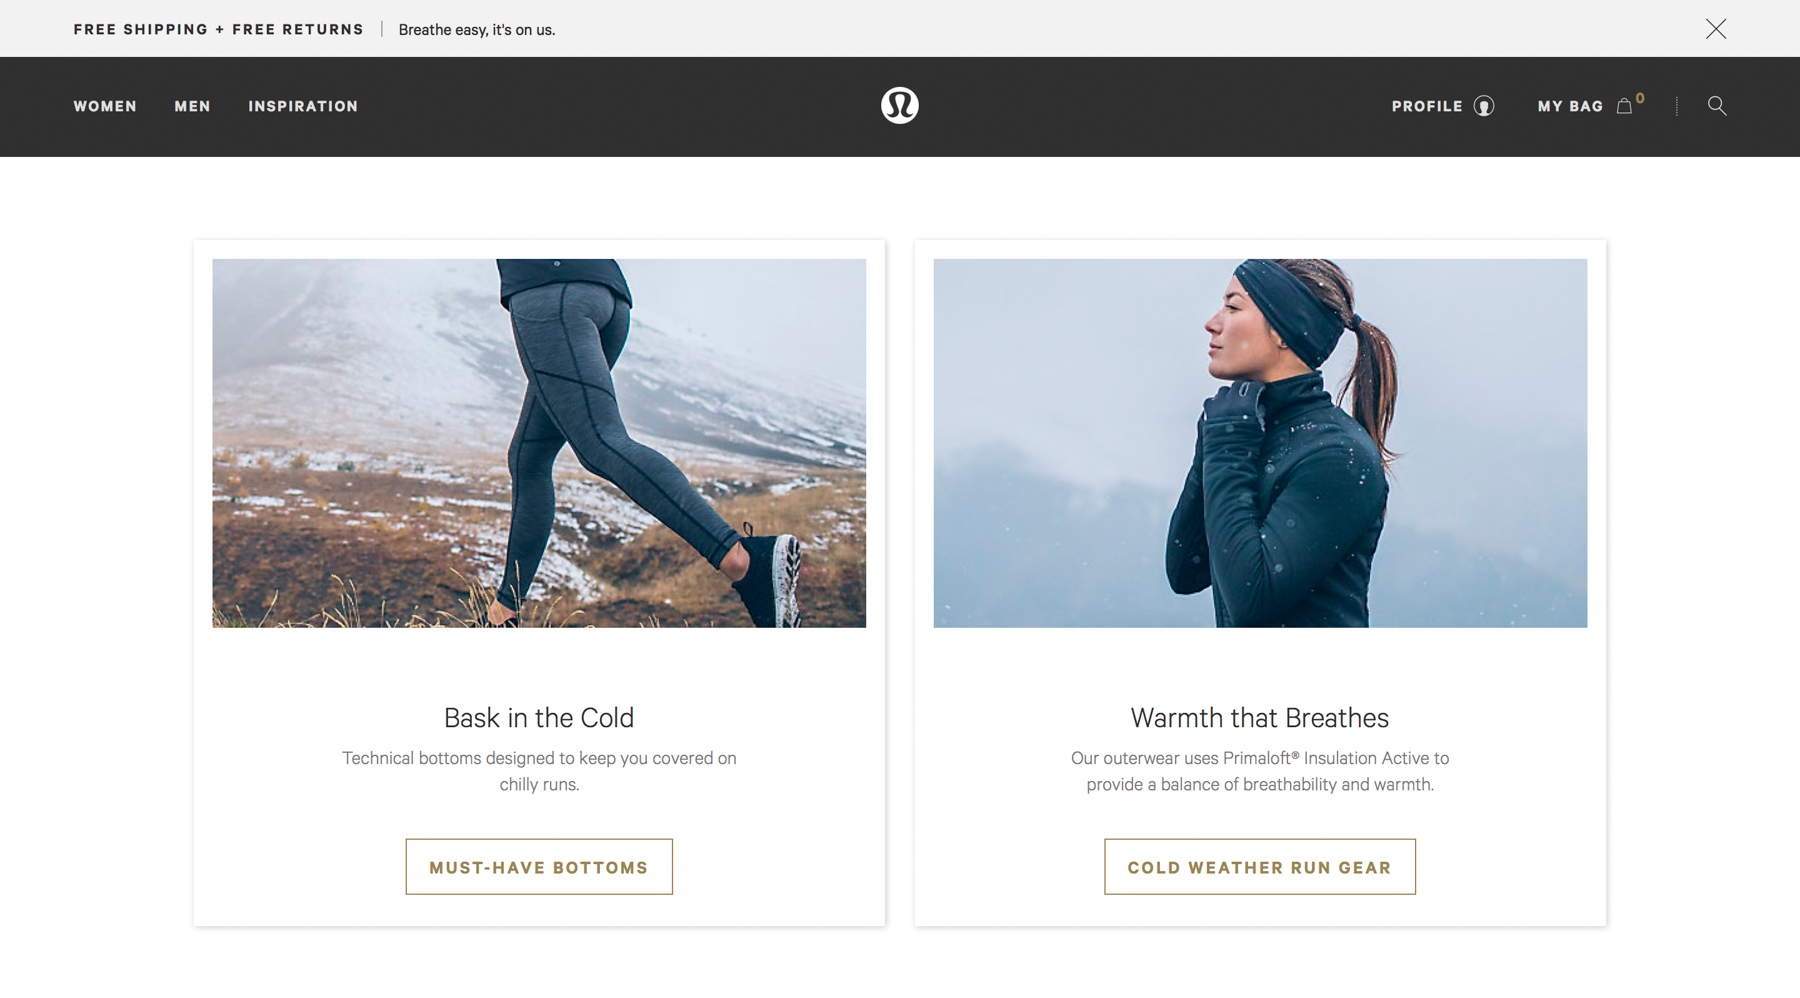 lululemon_running_campaign_photography_cold_mountains_image_26.jpg